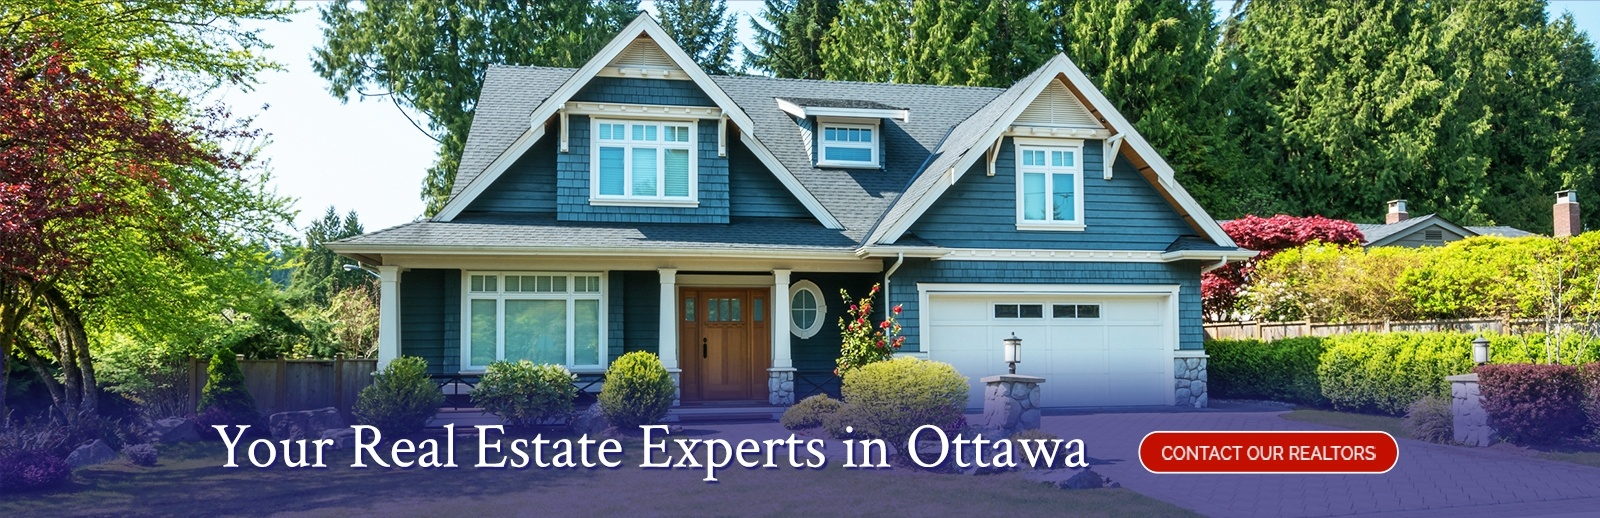 Professional Real Estate Agents Ottawa ON